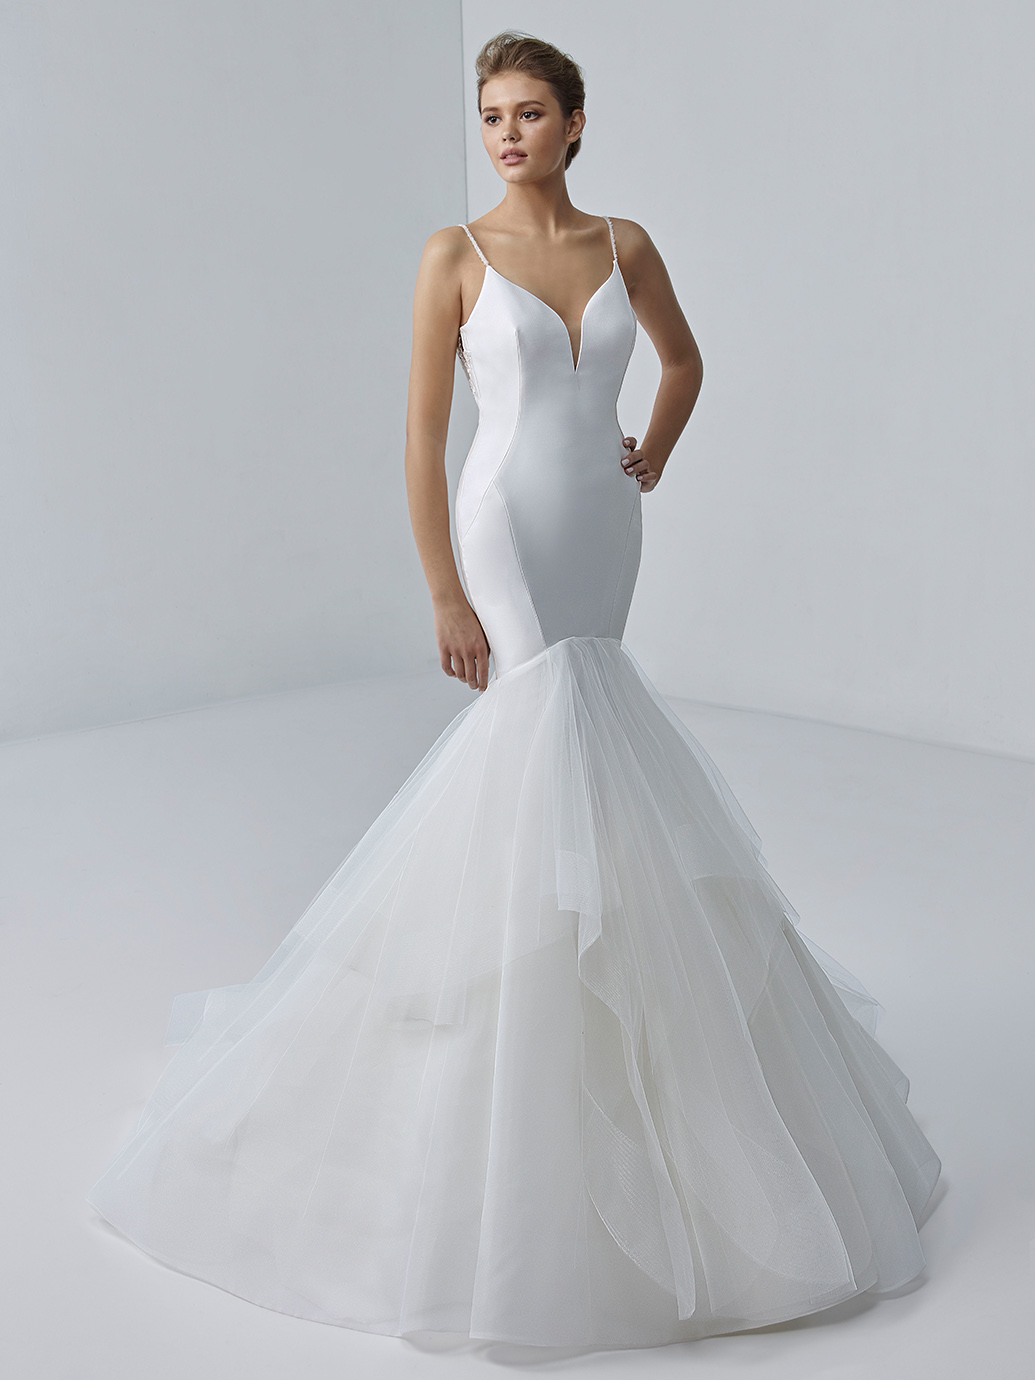 étoile-by-enzoani-2021-Dress-Finder-Brigitte